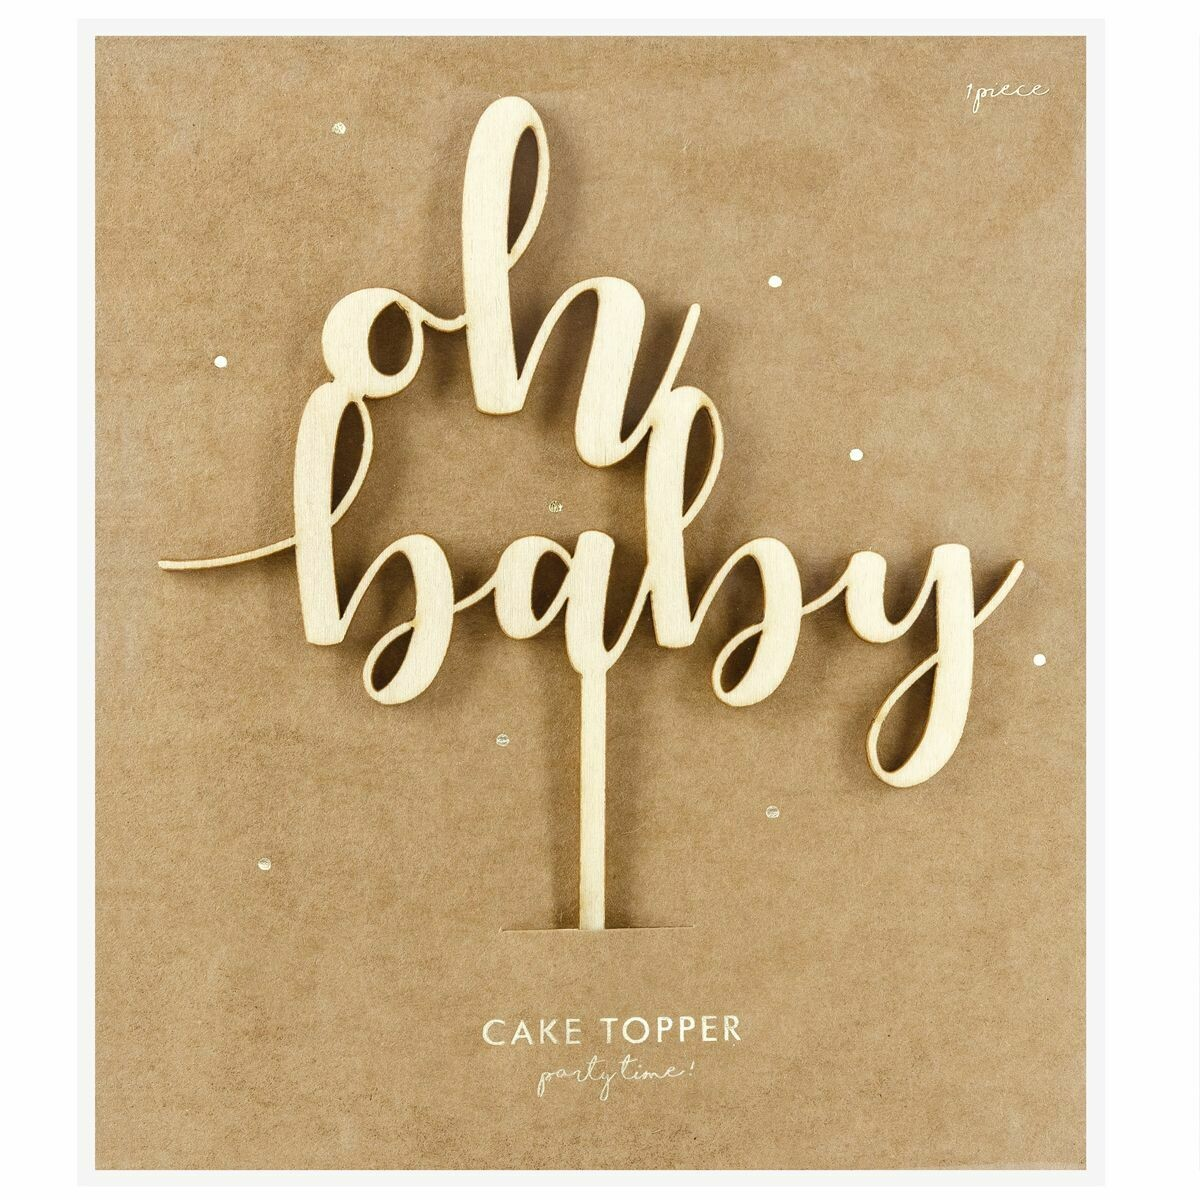 PartyDeco Cake Topper 'Oh Baby' - WOODEN -Τόπερ Τούρτας Ξύλινο 'Oh Baby'